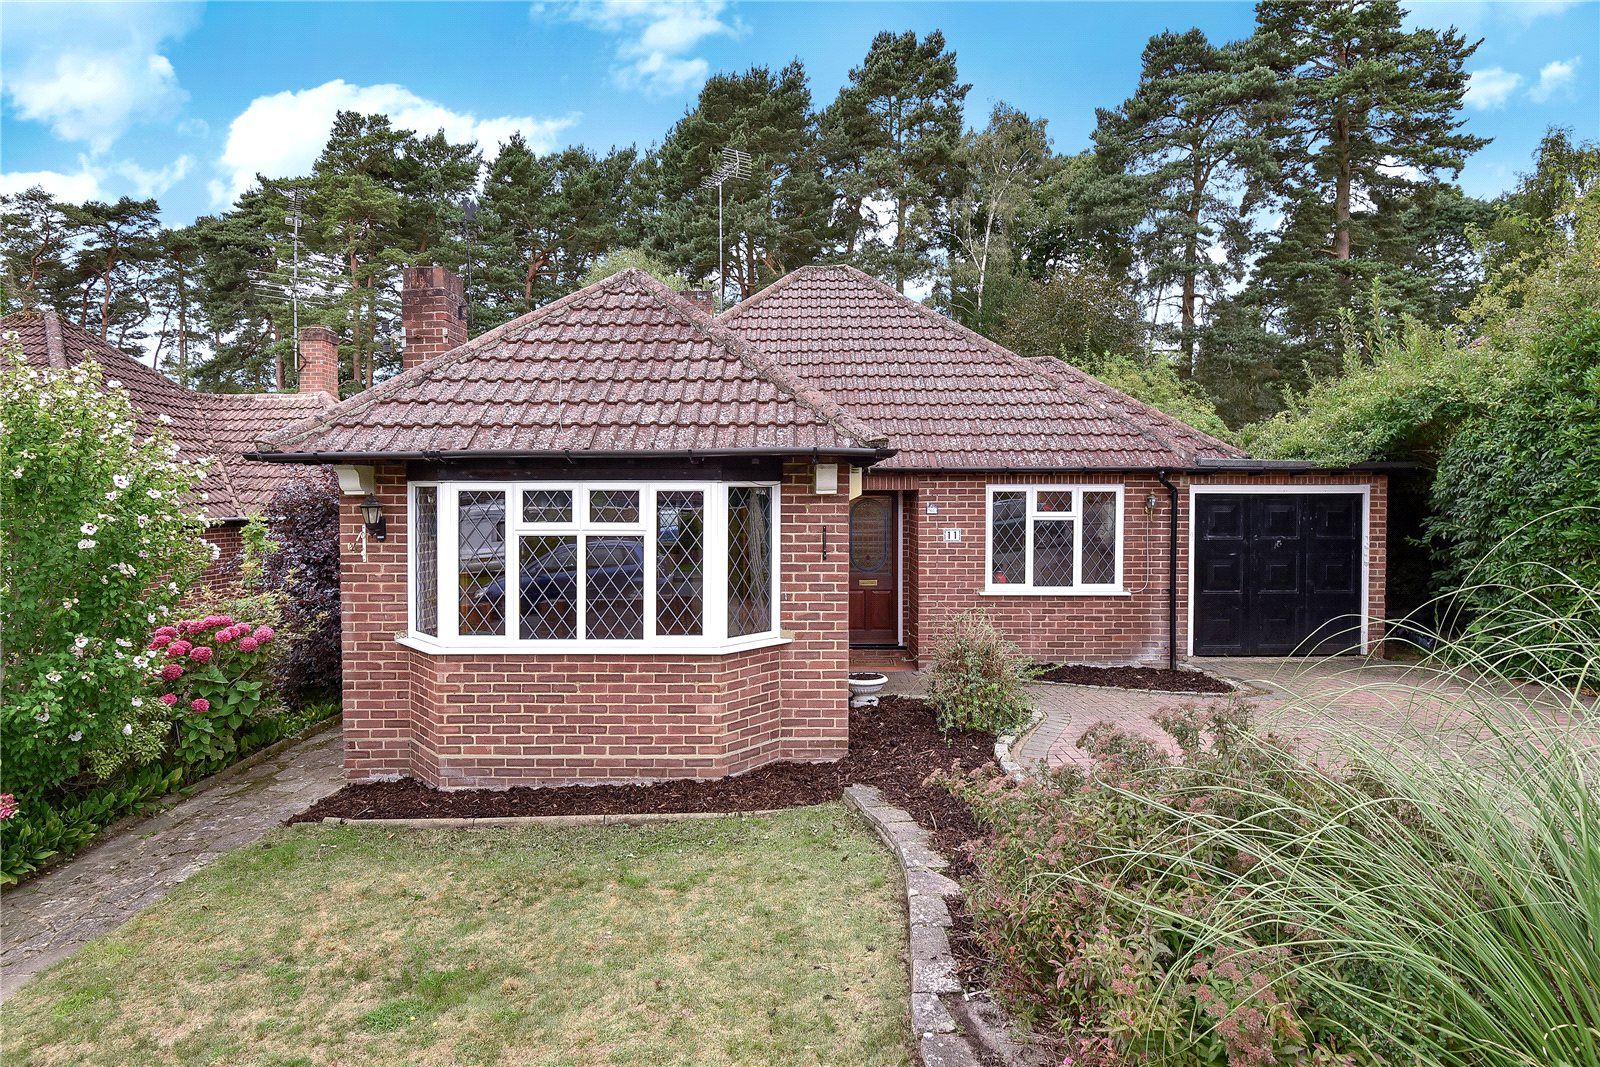 3 Bedrooms Detached Bungalow for sale in Beech Ride, Sandhurst, Berkshire, GU47